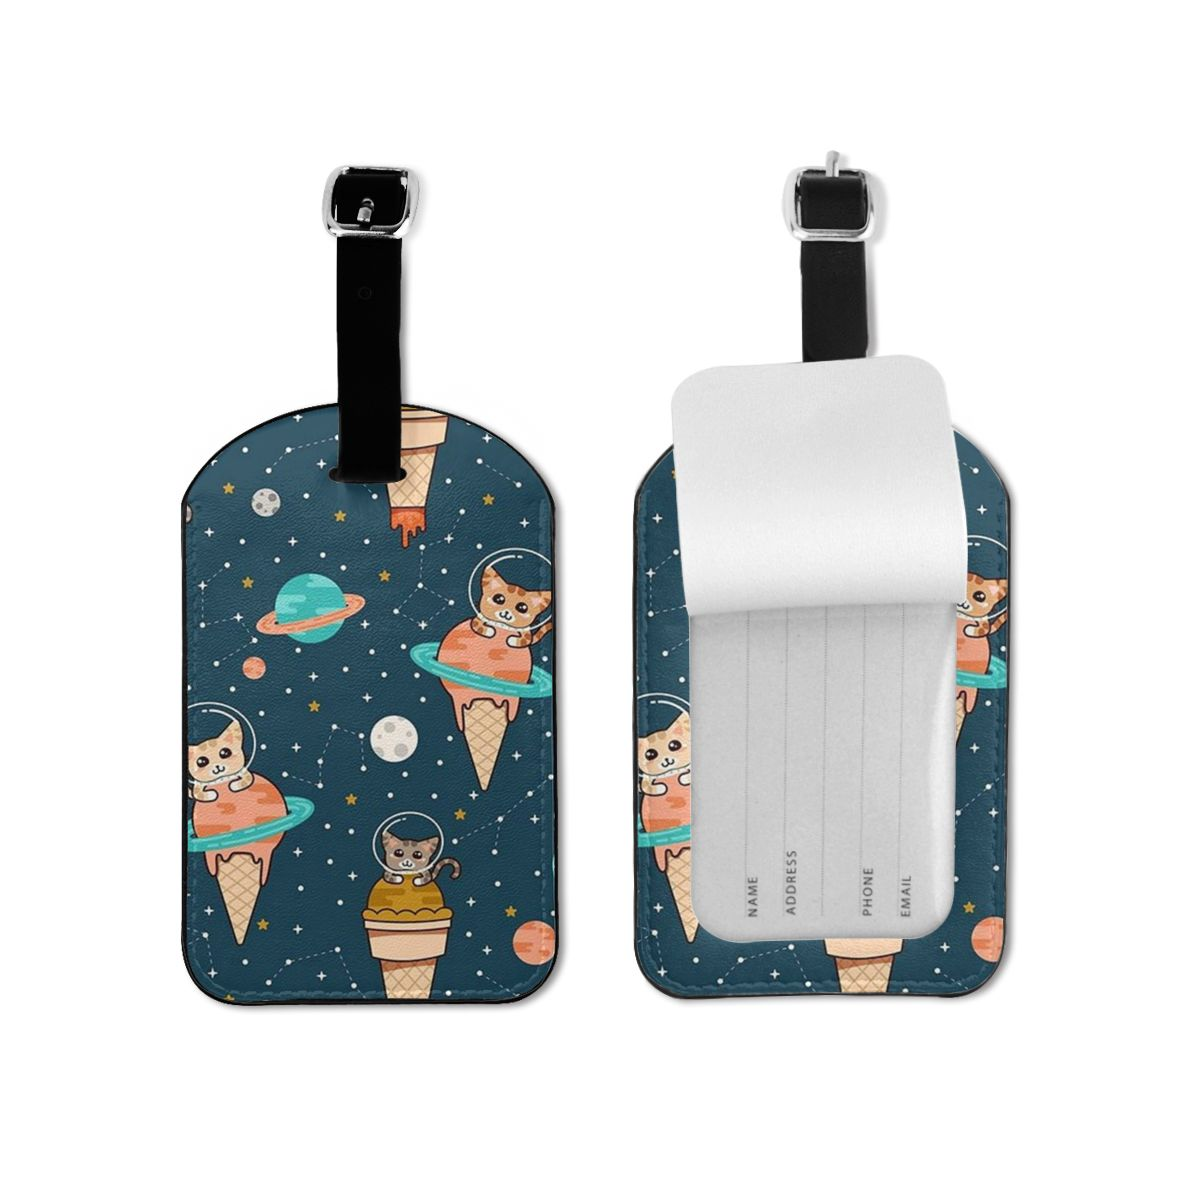 NOISYDESIGNS Kawaii Space Cats Luggage&bags Accessories Leather ID Addres Holder Luggage Label Straps Suitcase Tag Drop Shipping